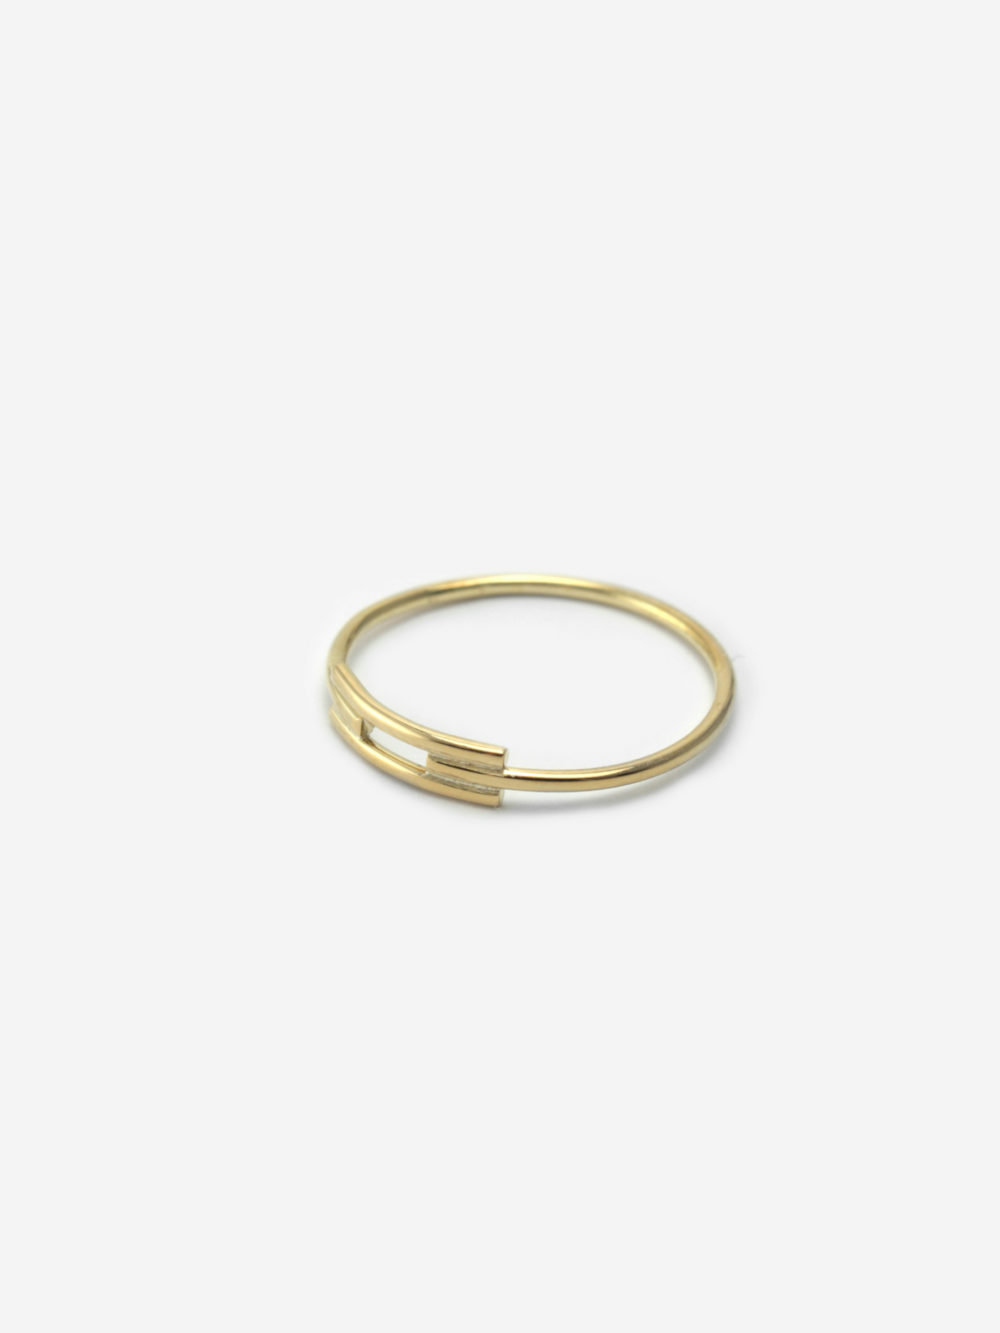 Minimal Line ring by Bepart - available at utopiast.com